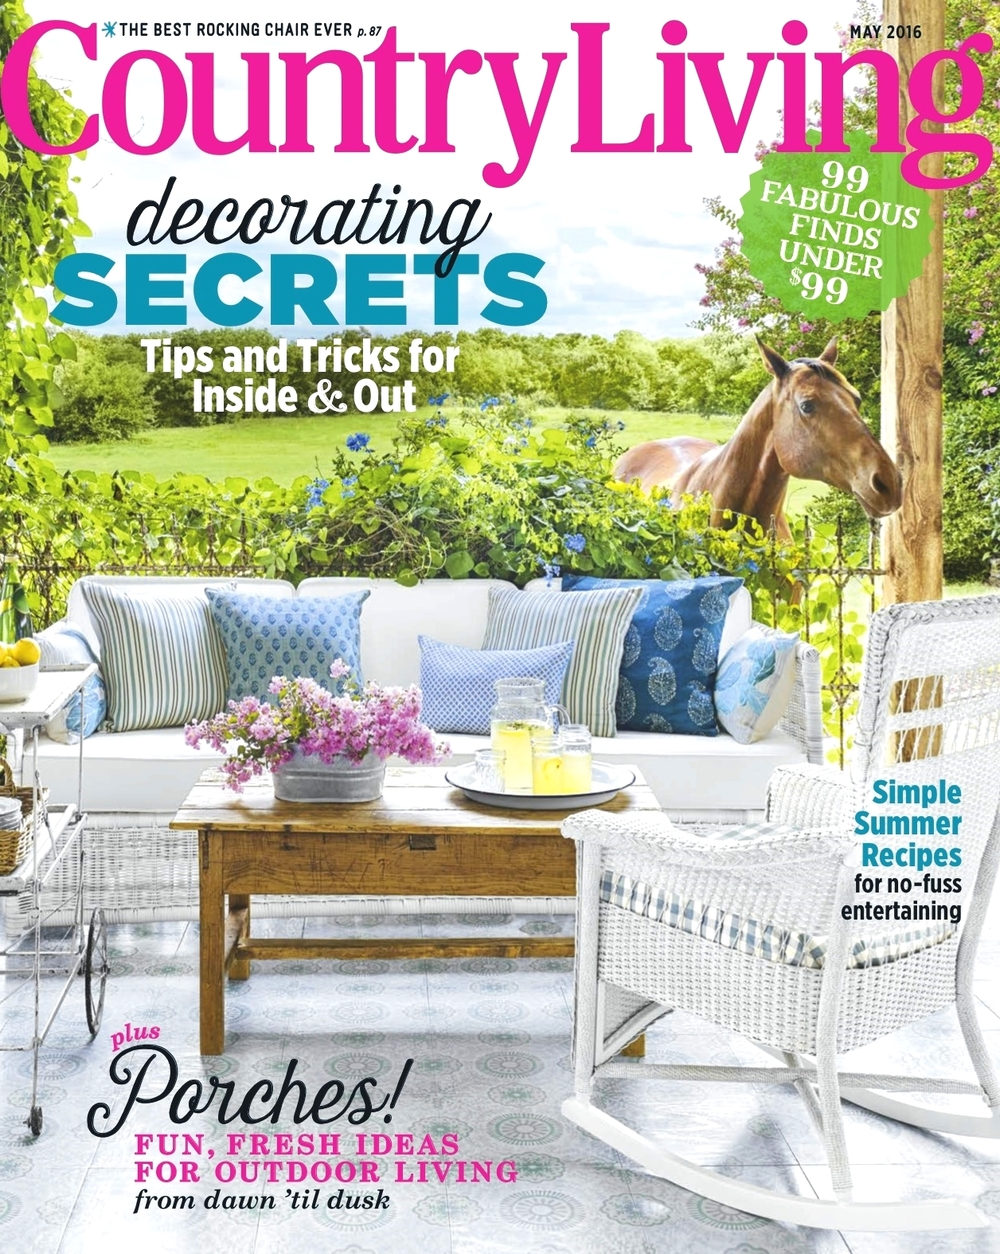 Country Living Cover May 2016